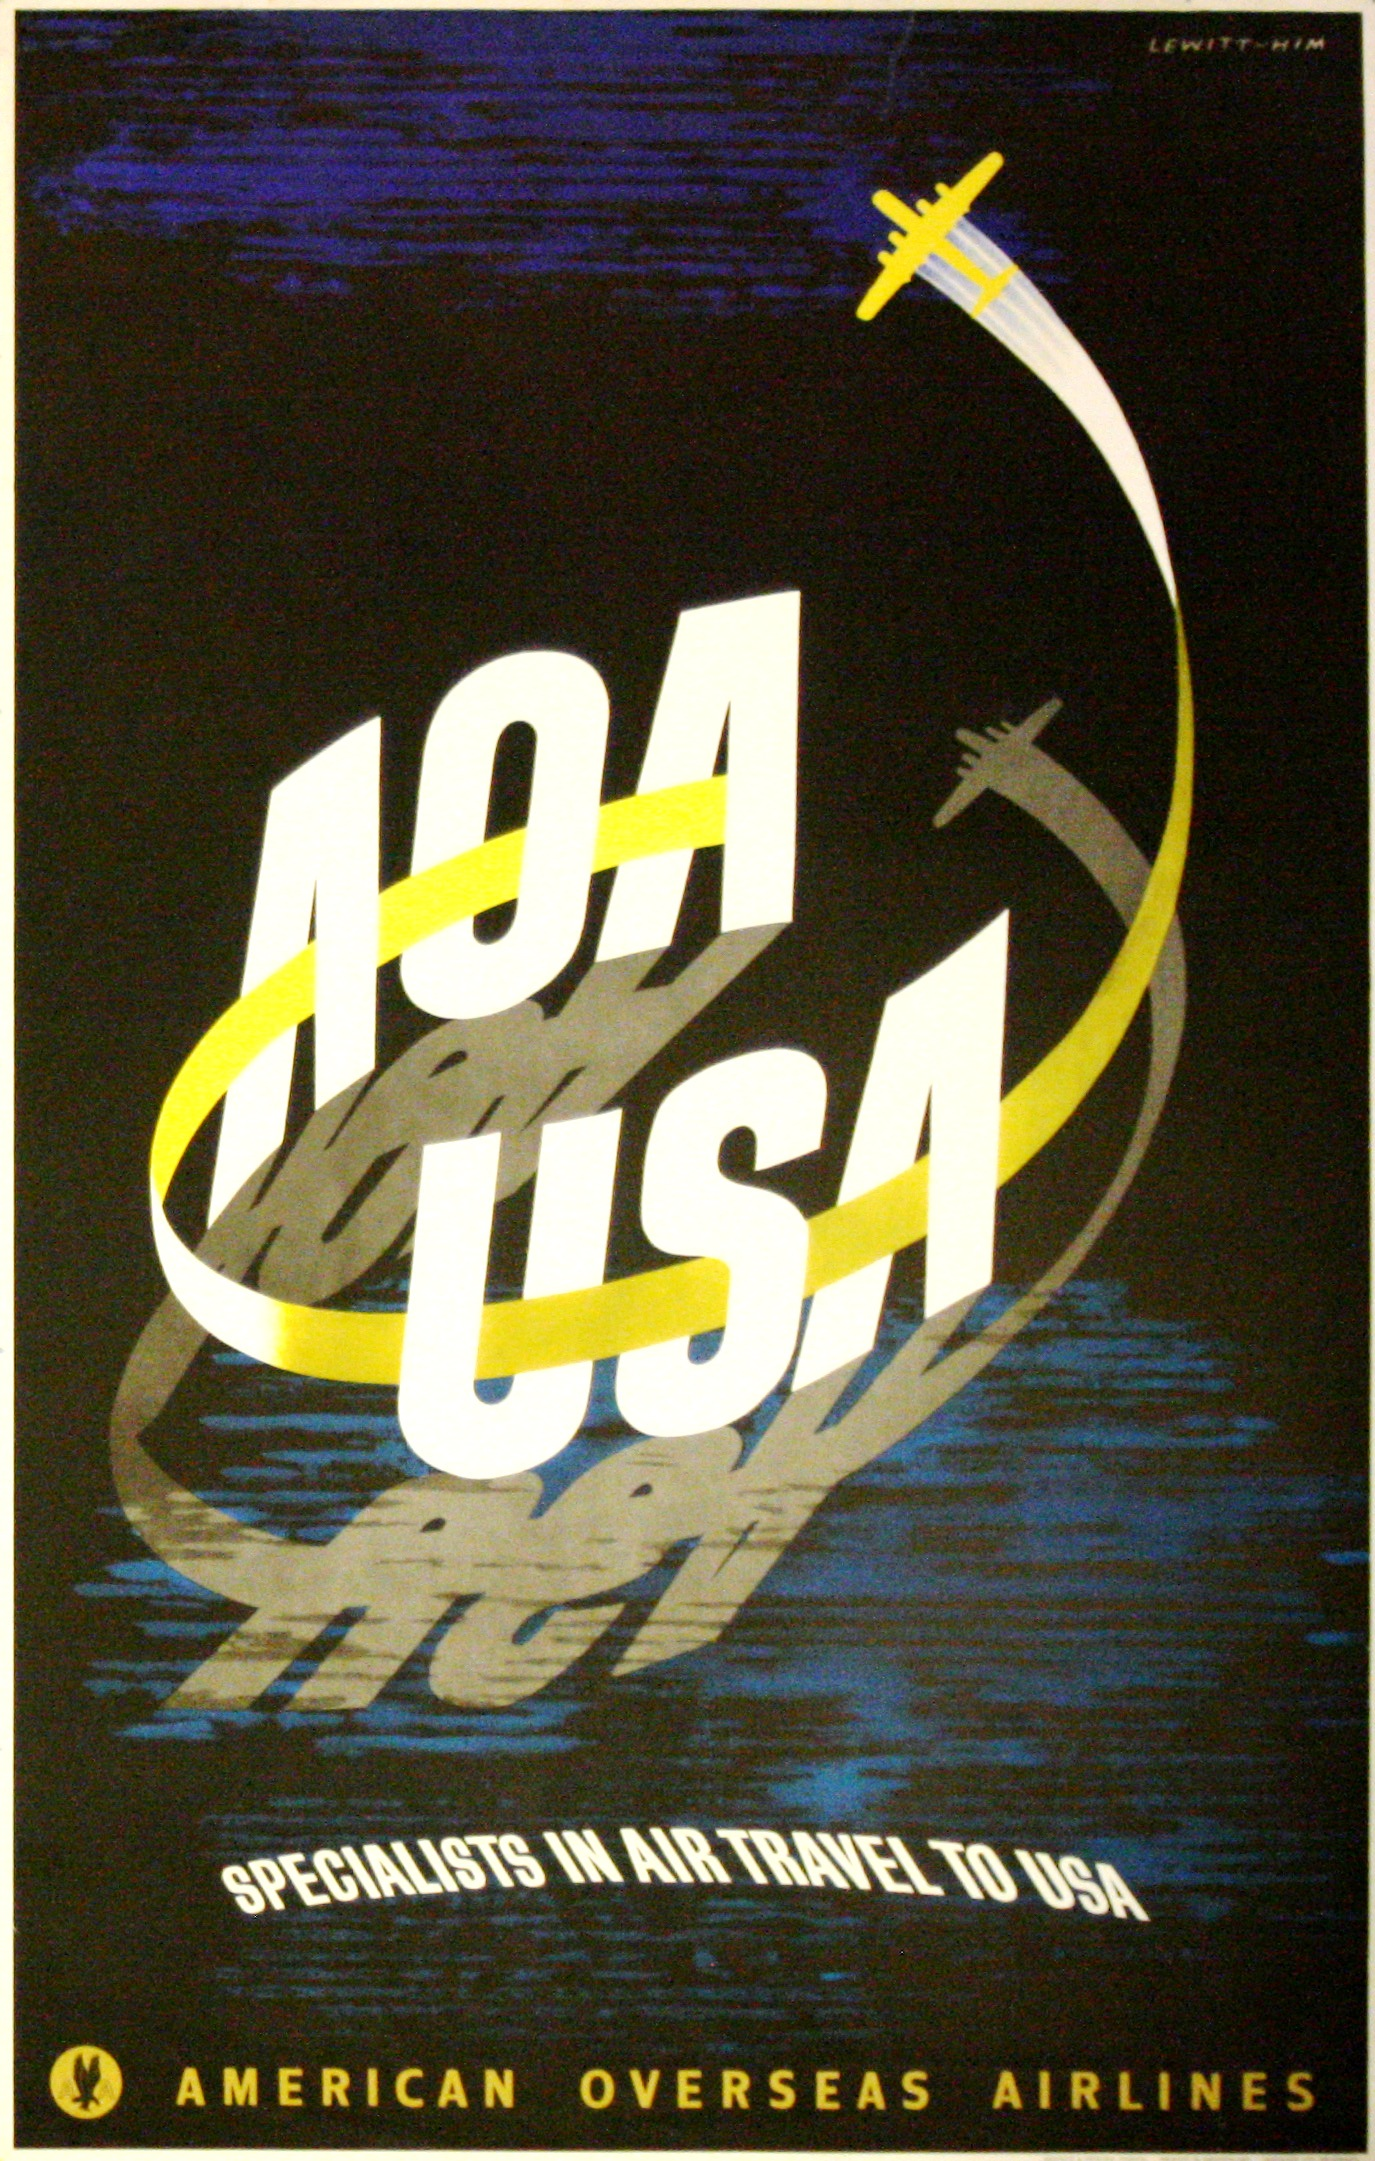 Lot 1409 - Advertising Poster American Overseas Airlines Midcentury